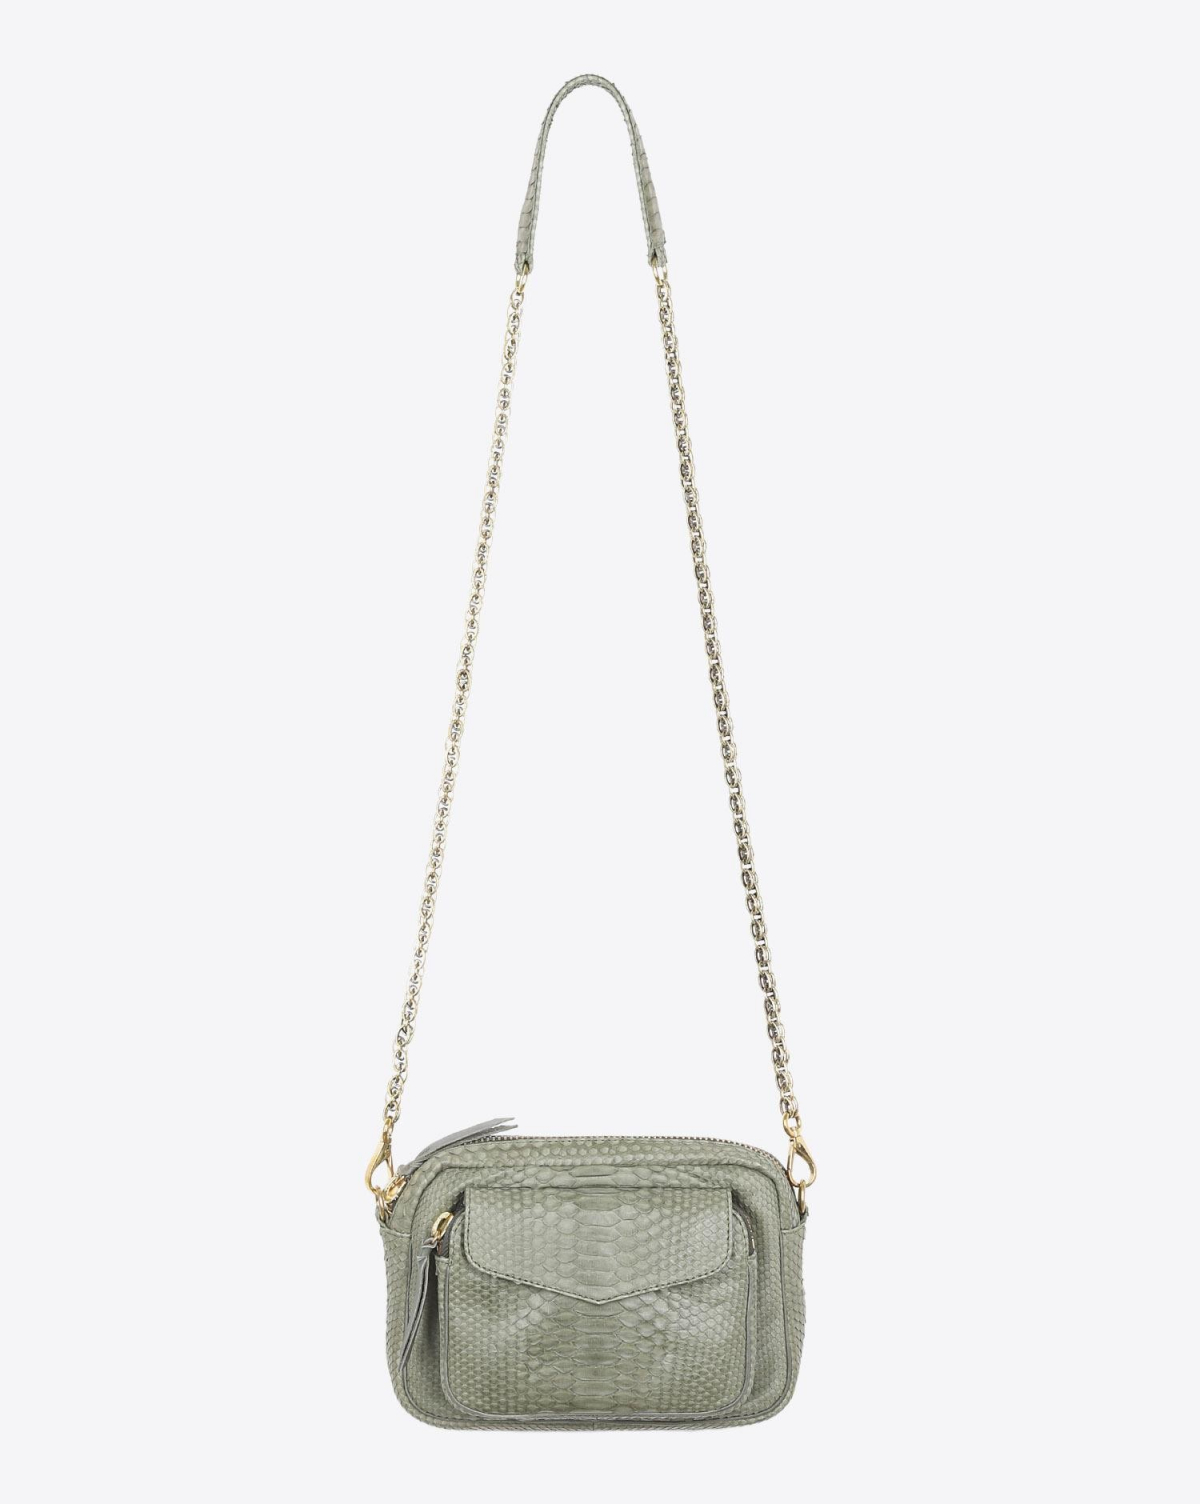 Claris Virot Sac Python Charly Militaire Chaine Or